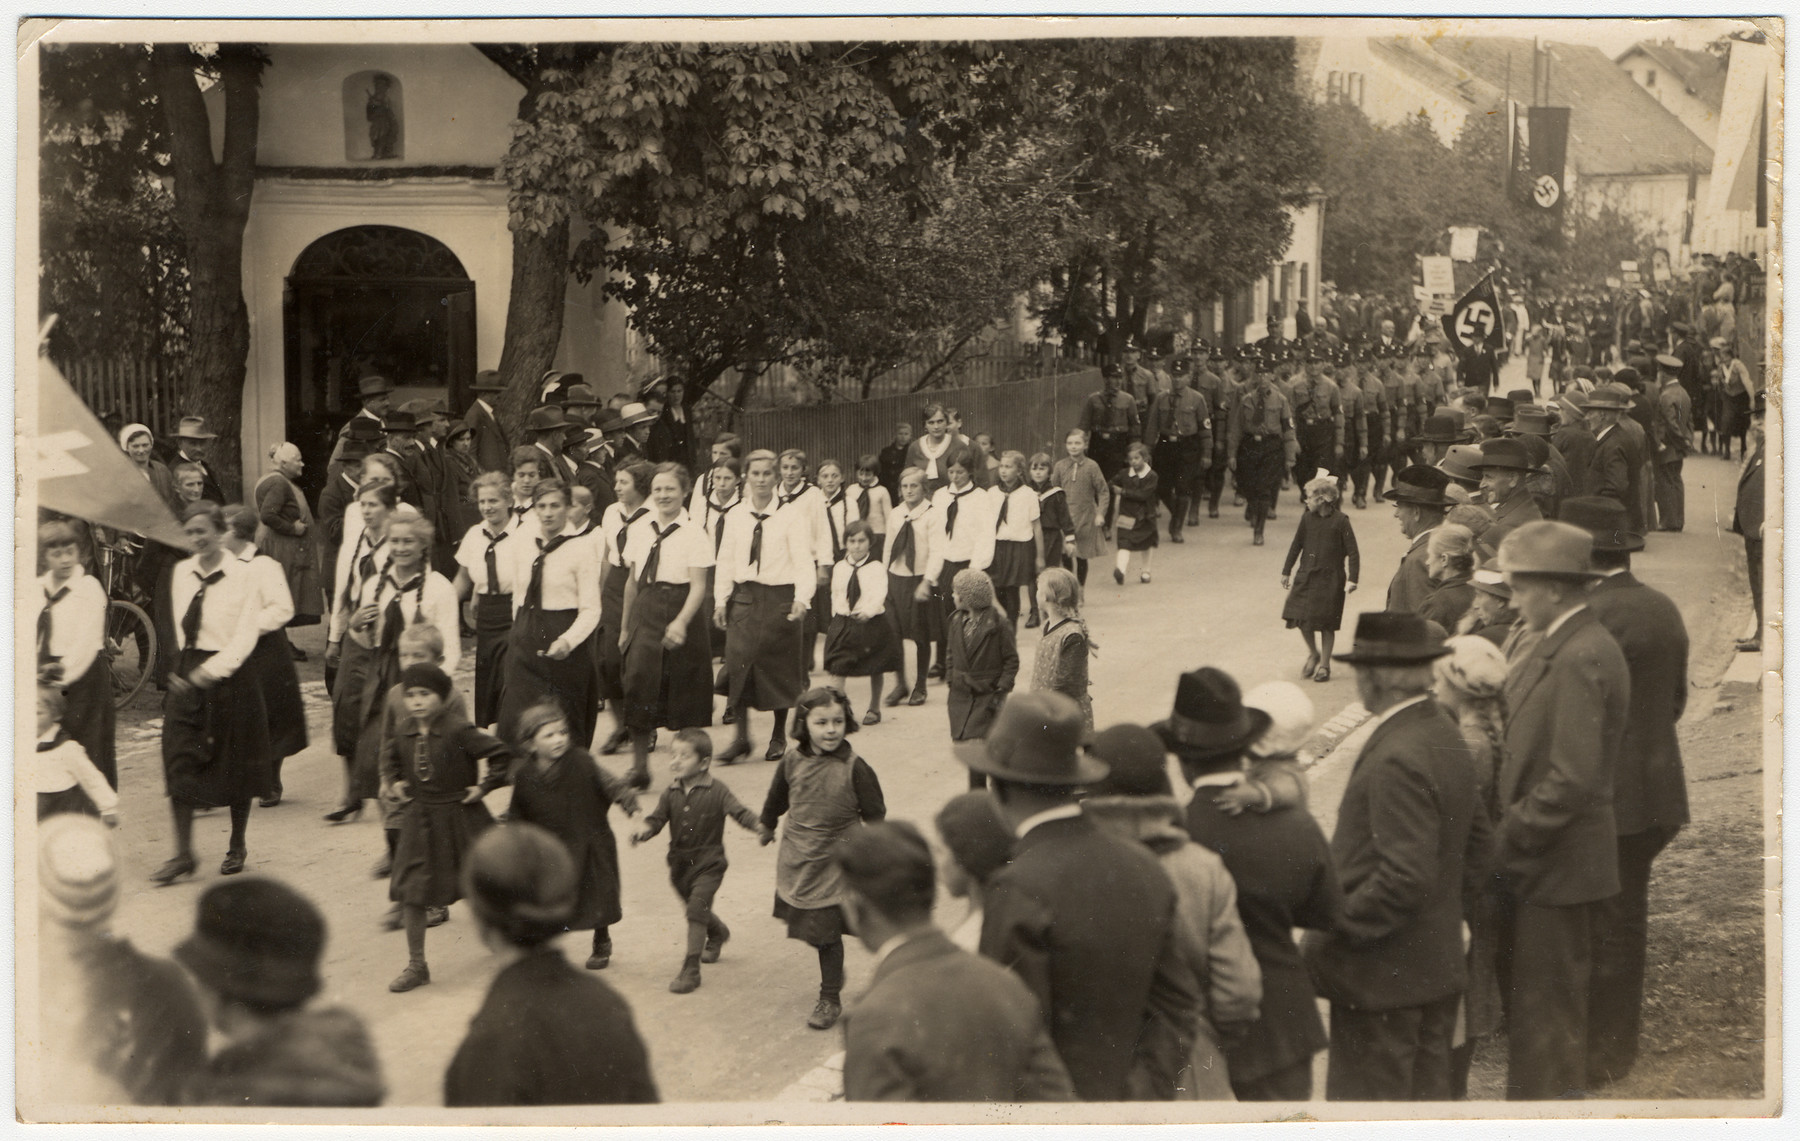 Members of the BDM walk proudly down the street of a German (?) town.